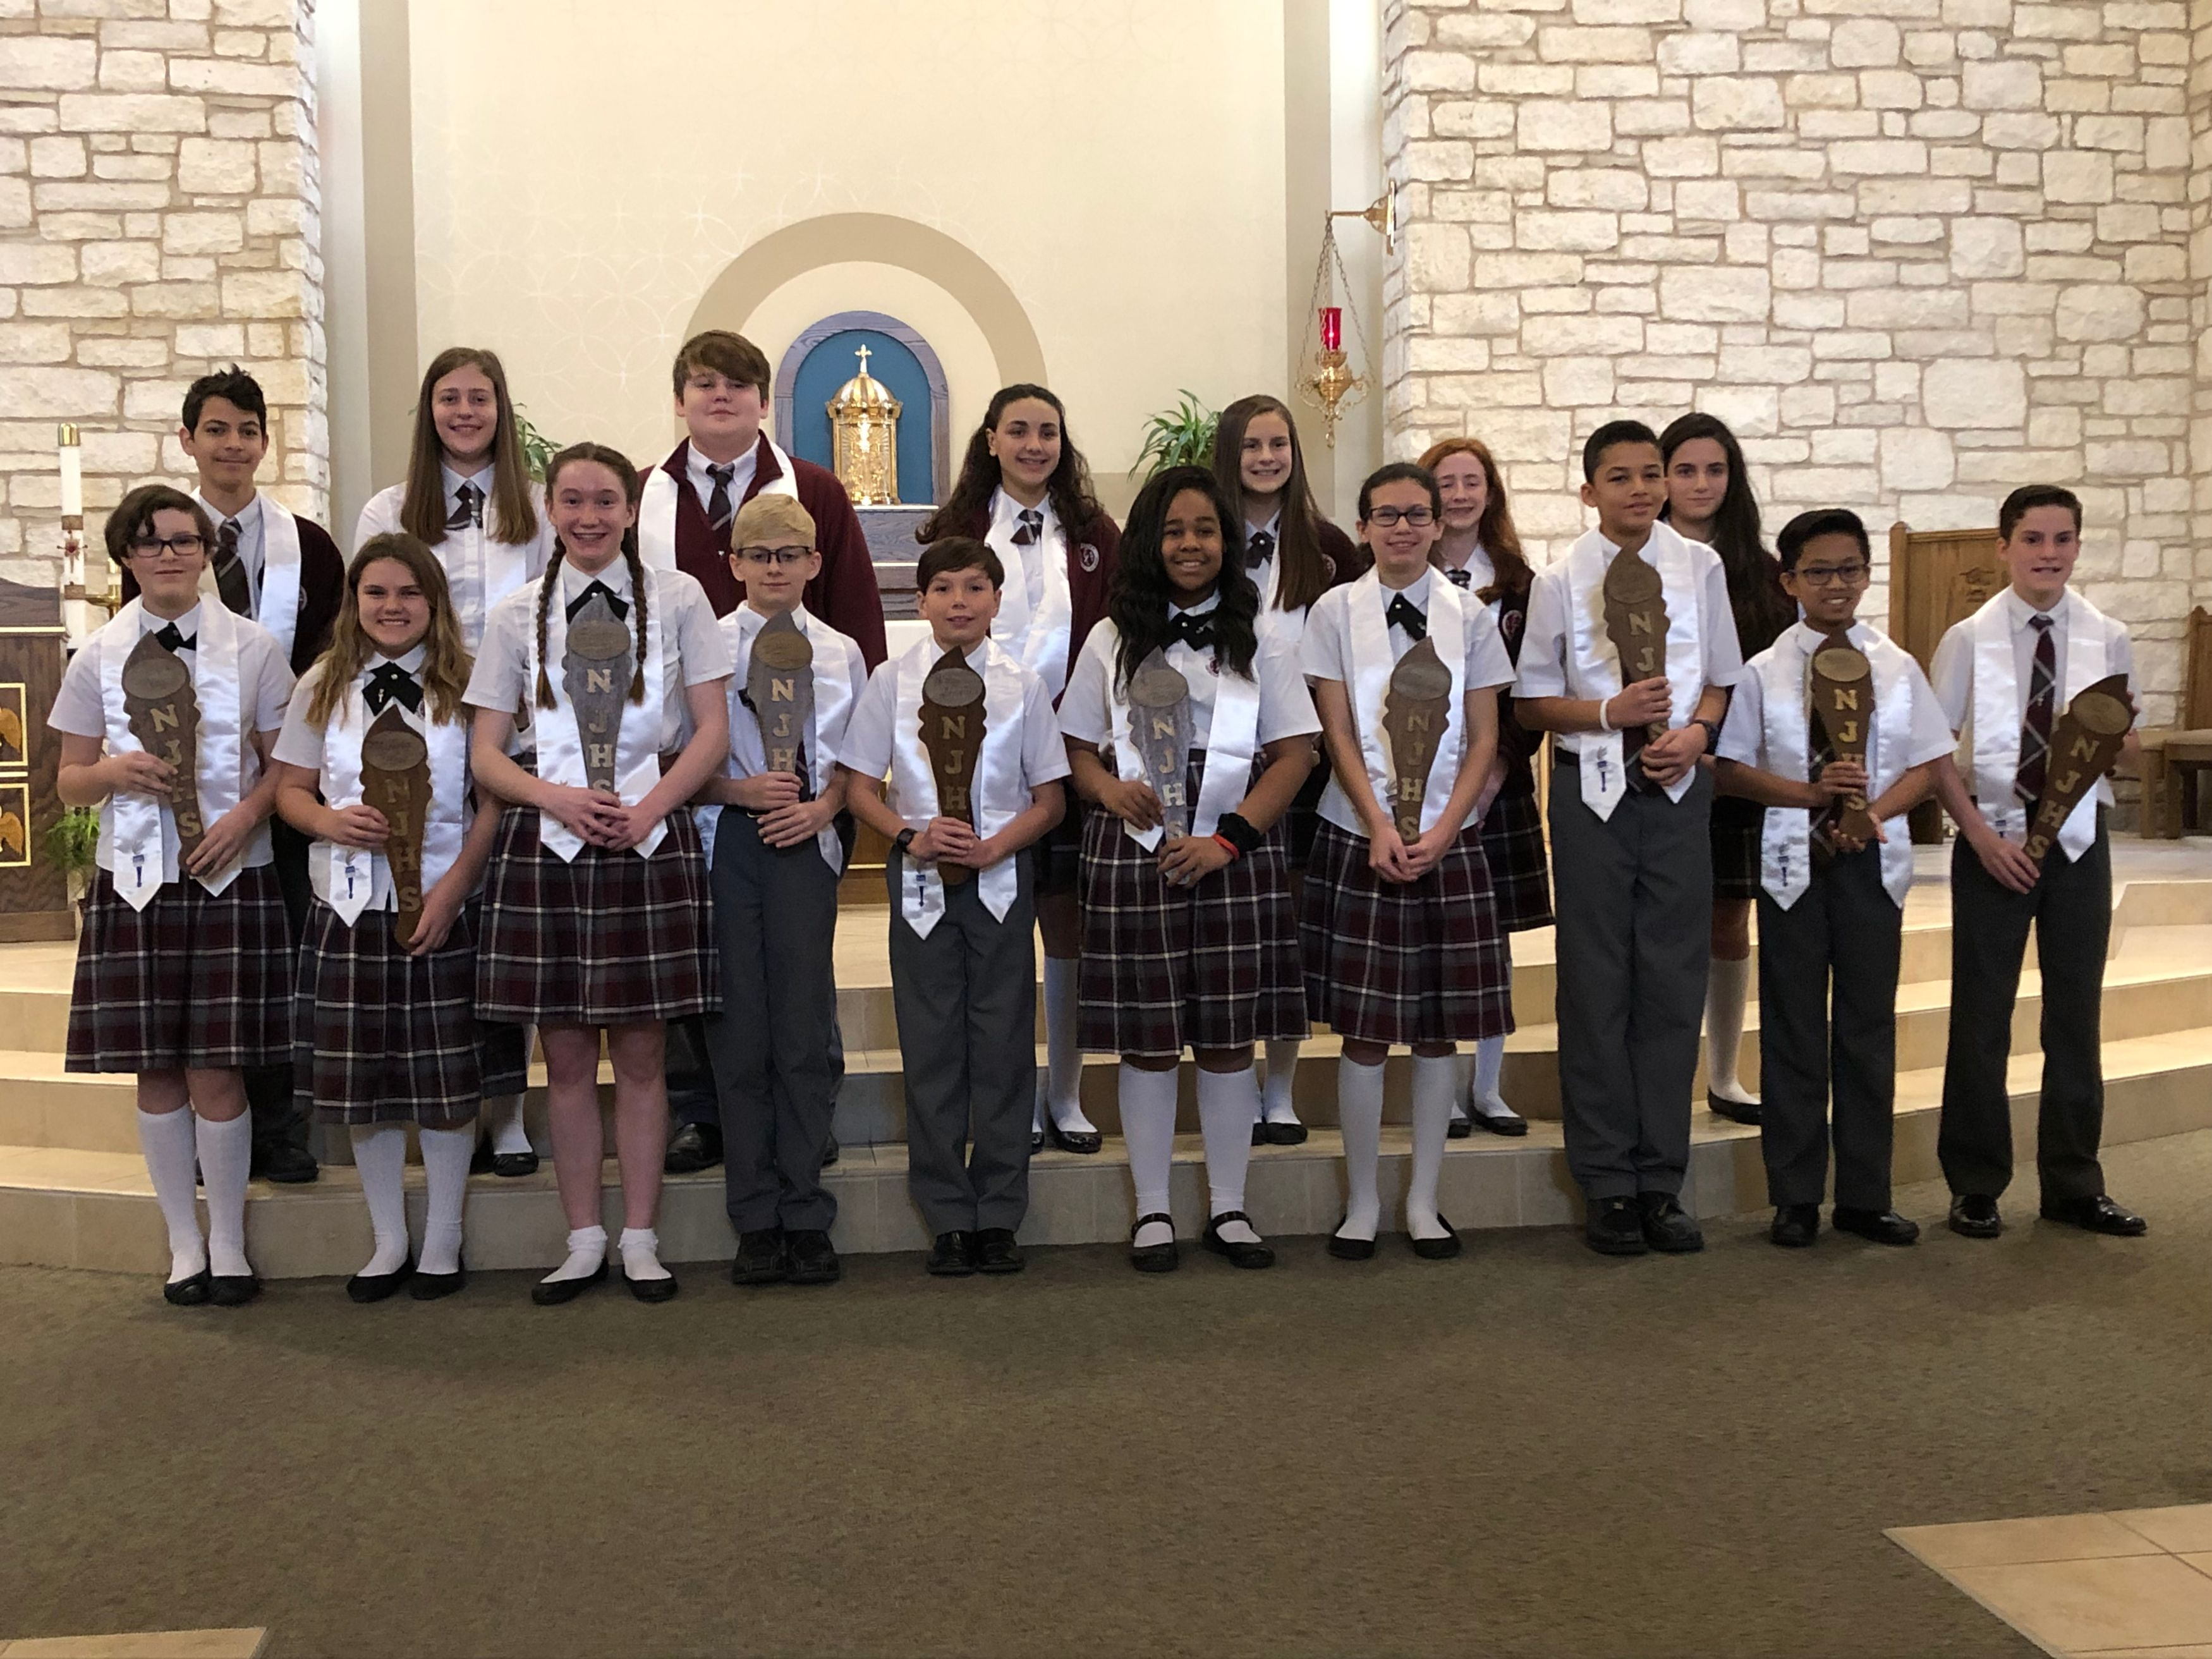 NJHS Members Receive Torches